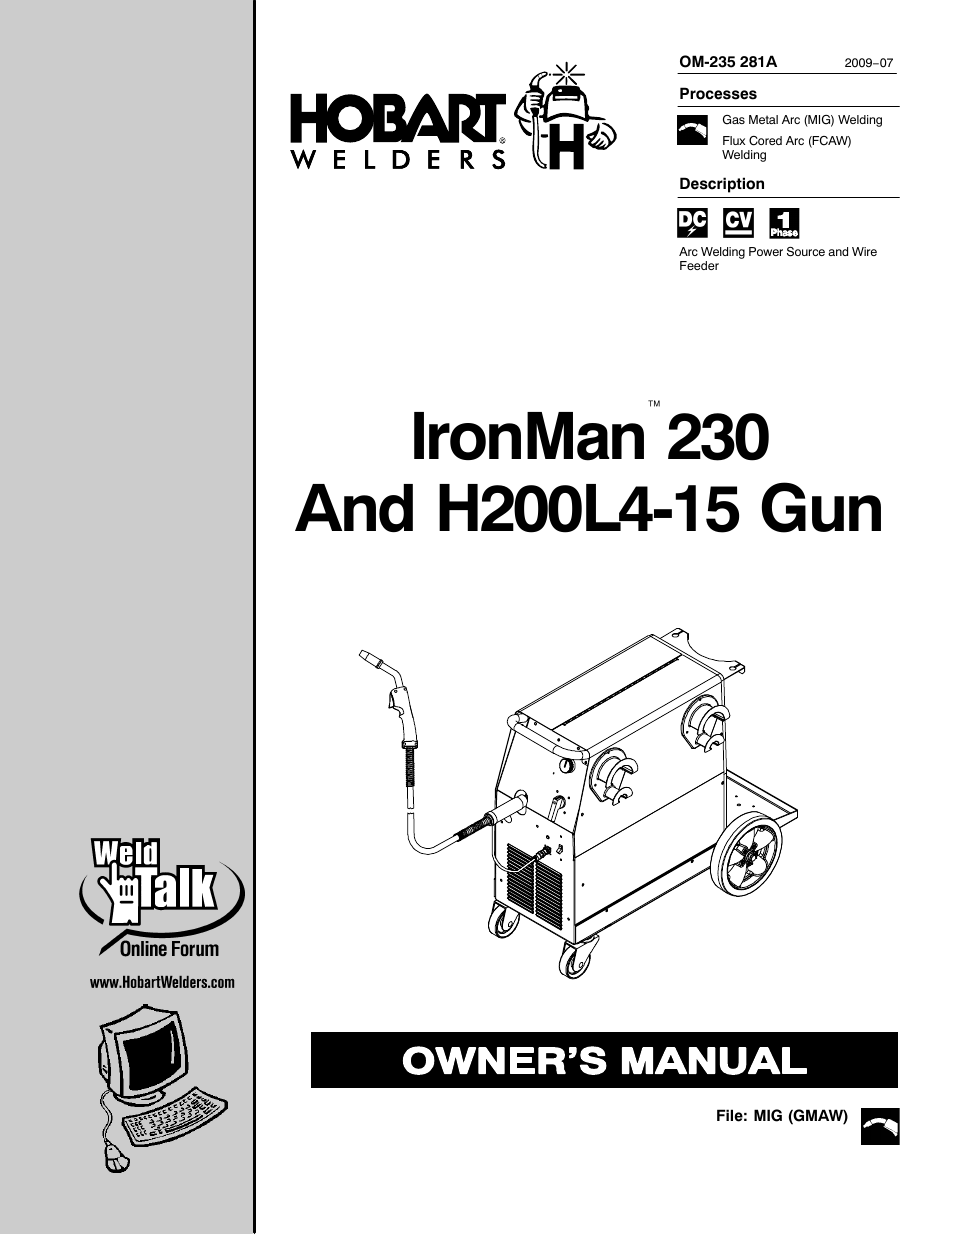 Hobart Welding Products IRONMAN 230 User Manual | 56 pages